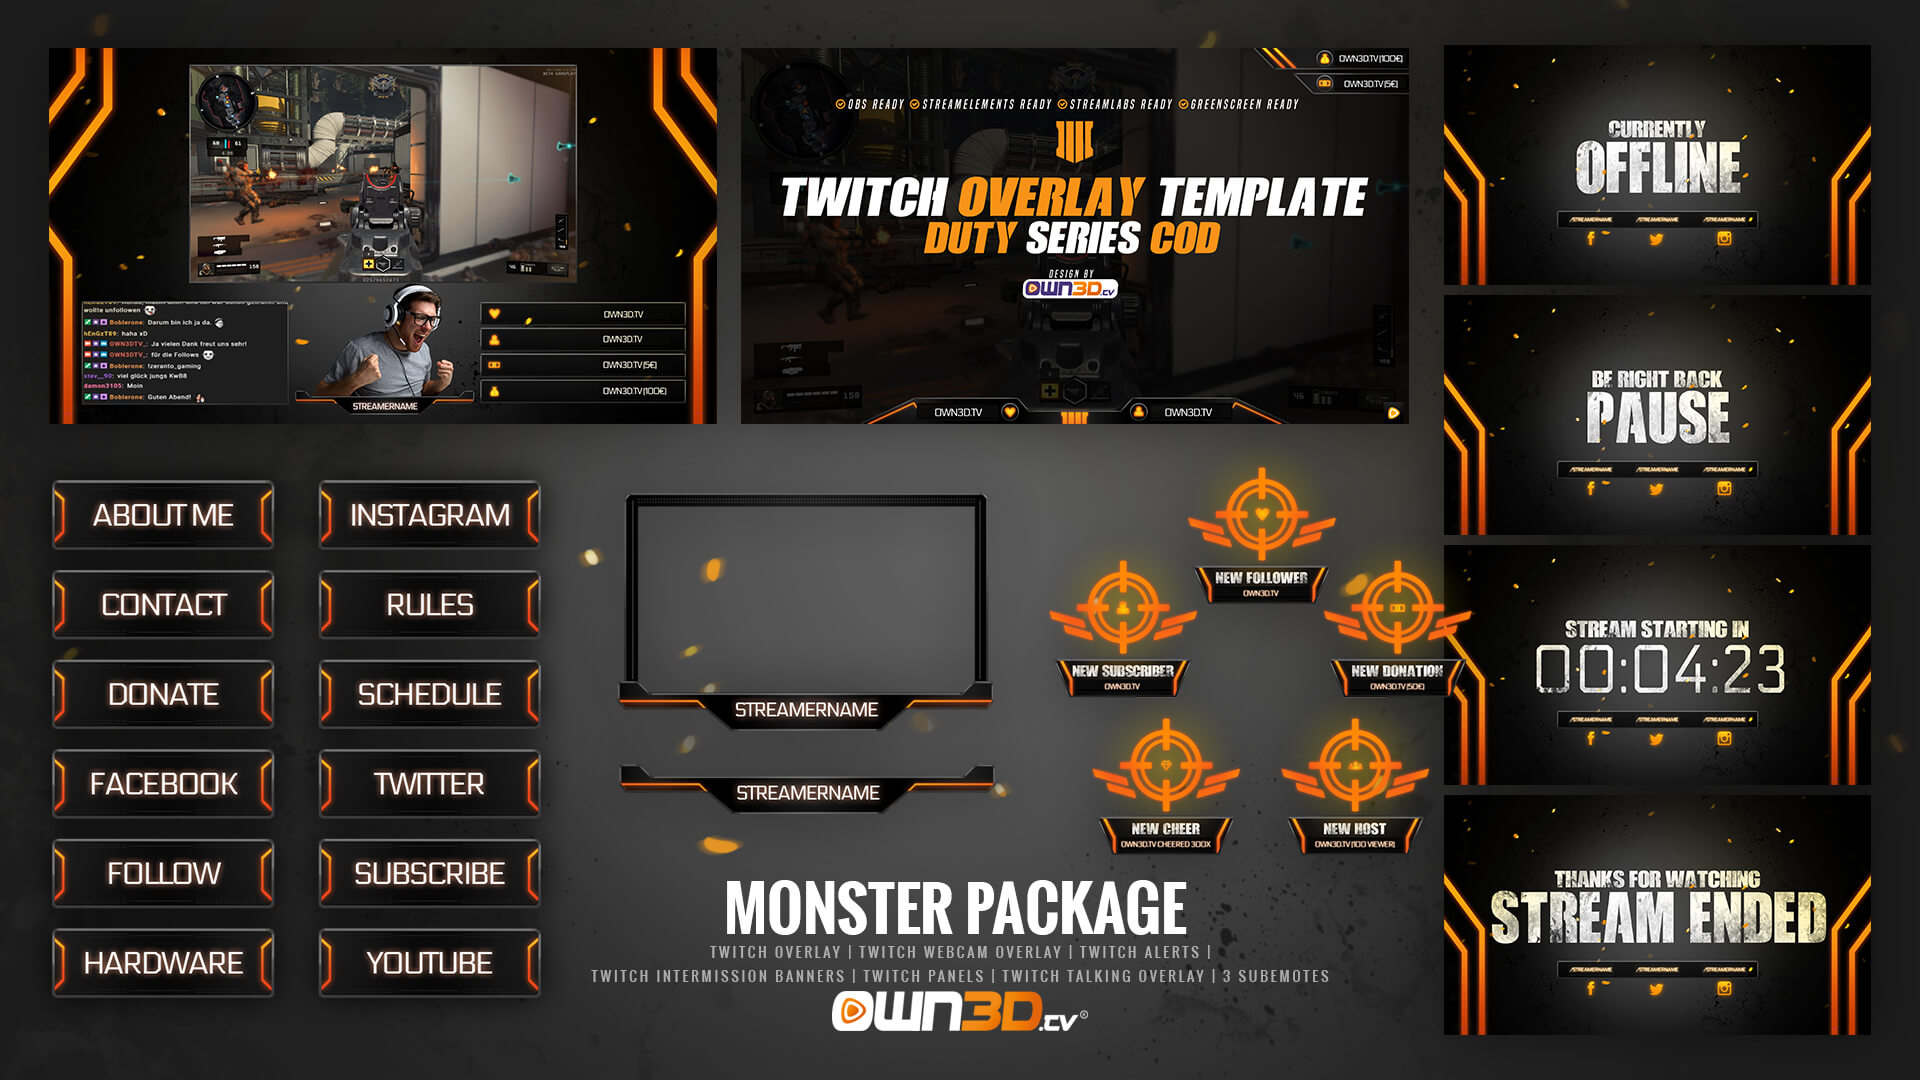 duty-series-cod-twitch-overlay-package-03-monster.jpg